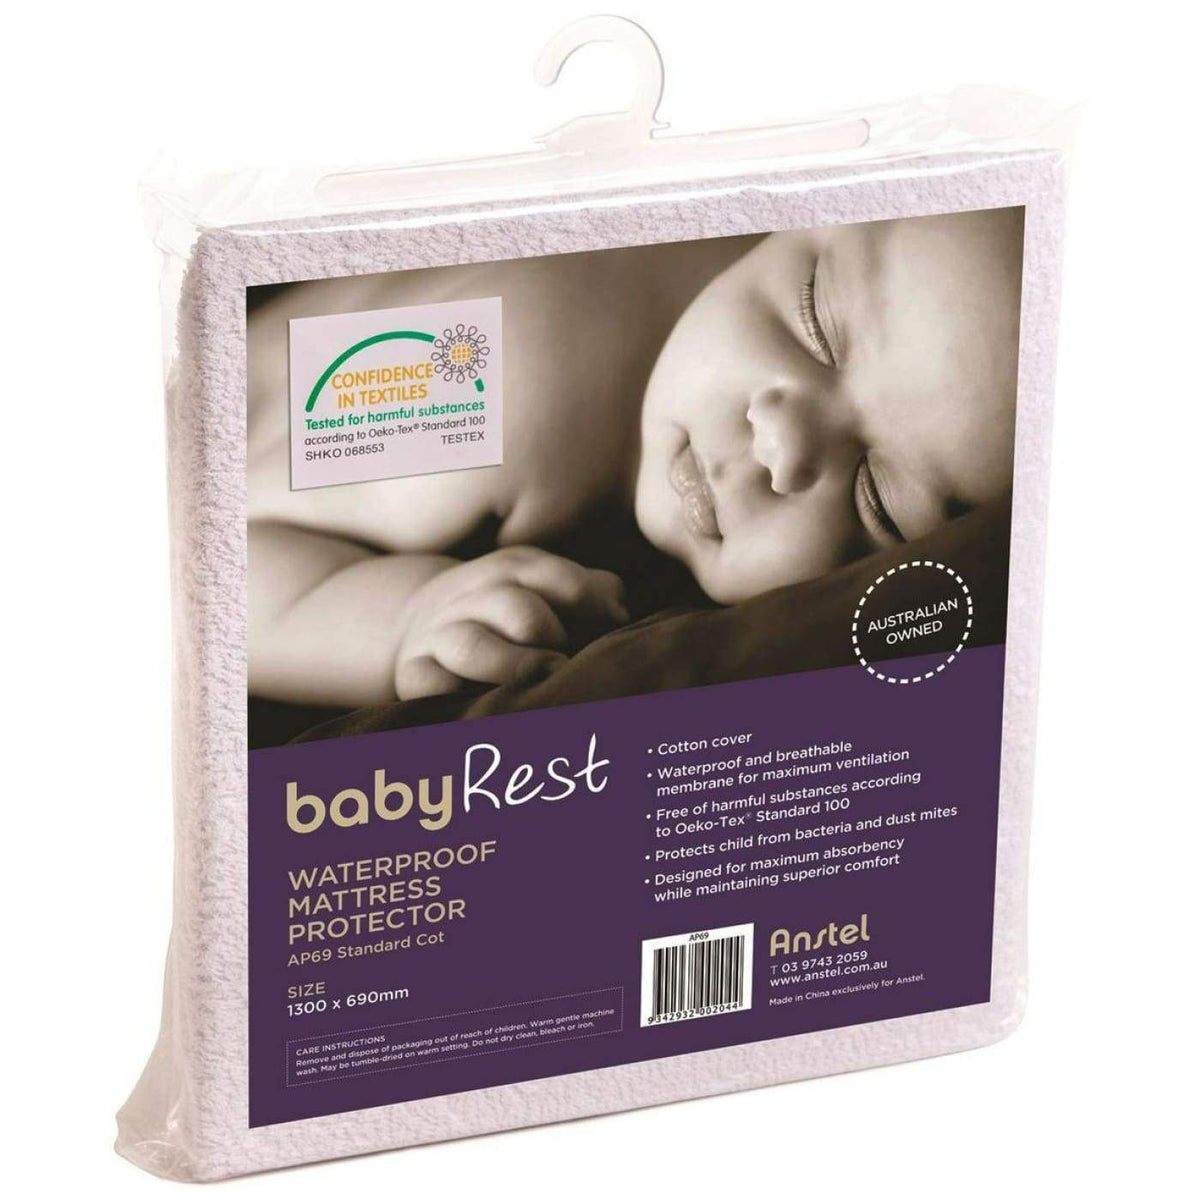 Babyrest Waterproof Mattress Protector - Standard Cot up to 130X70CM - NURSERY & BEDTIME - COT MATTRESS PROTECTORS